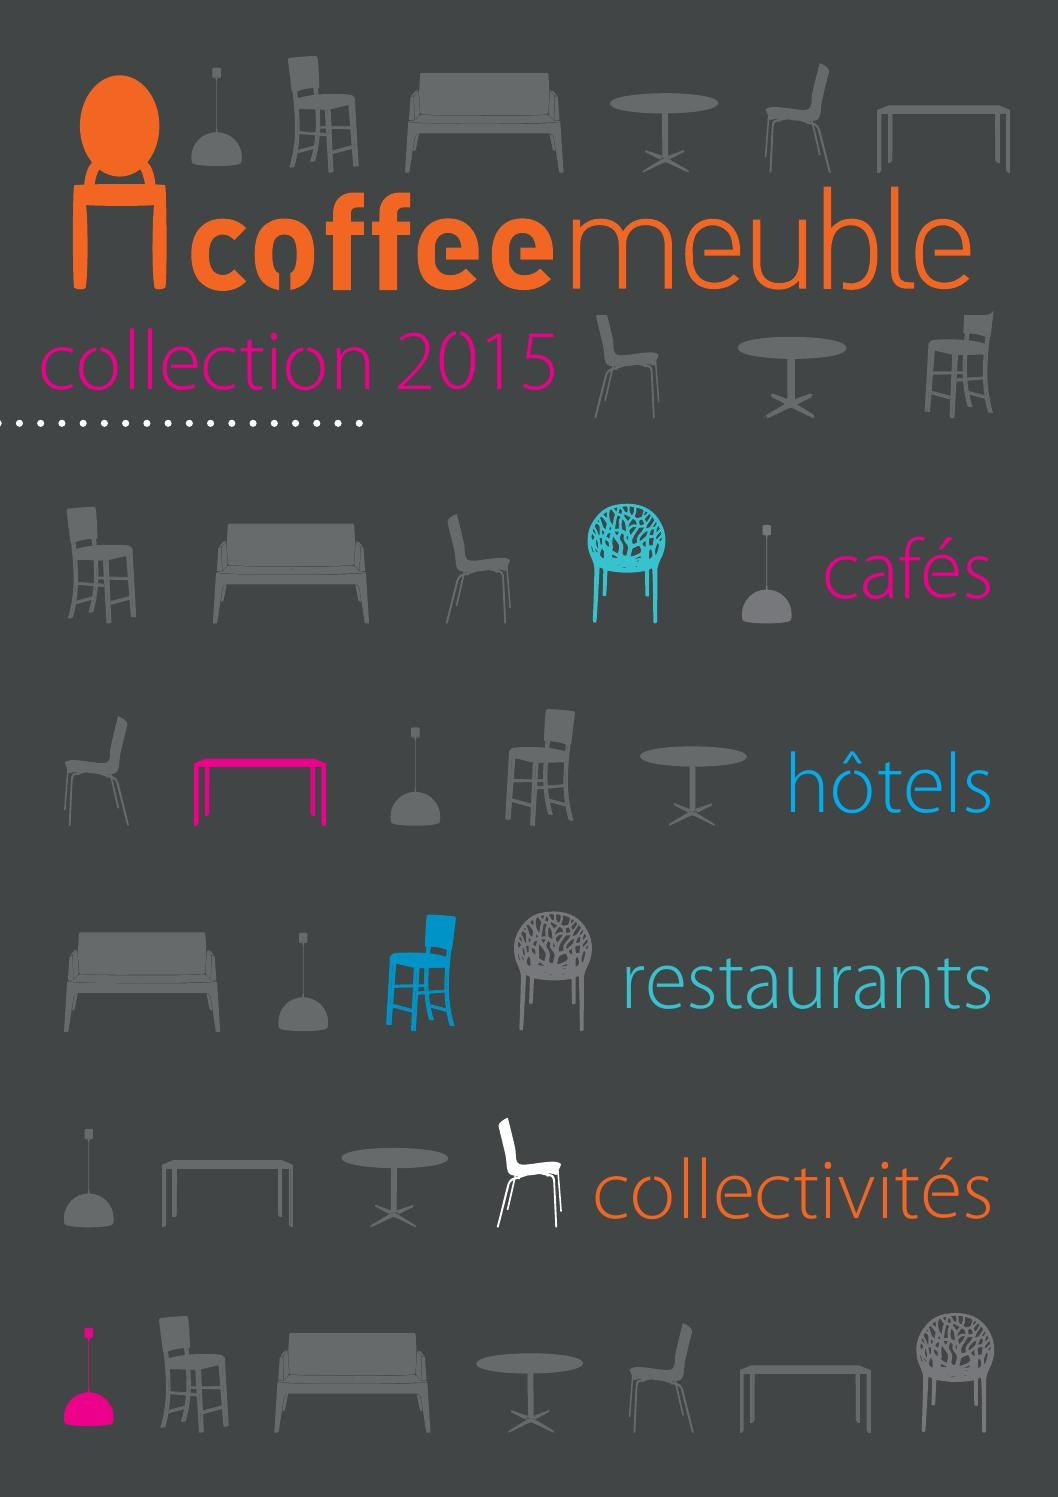 catalogue coffee meuble 2015 by coffee meuble issuu. Black Bedroom Furniture Sets. Home Design Ideas